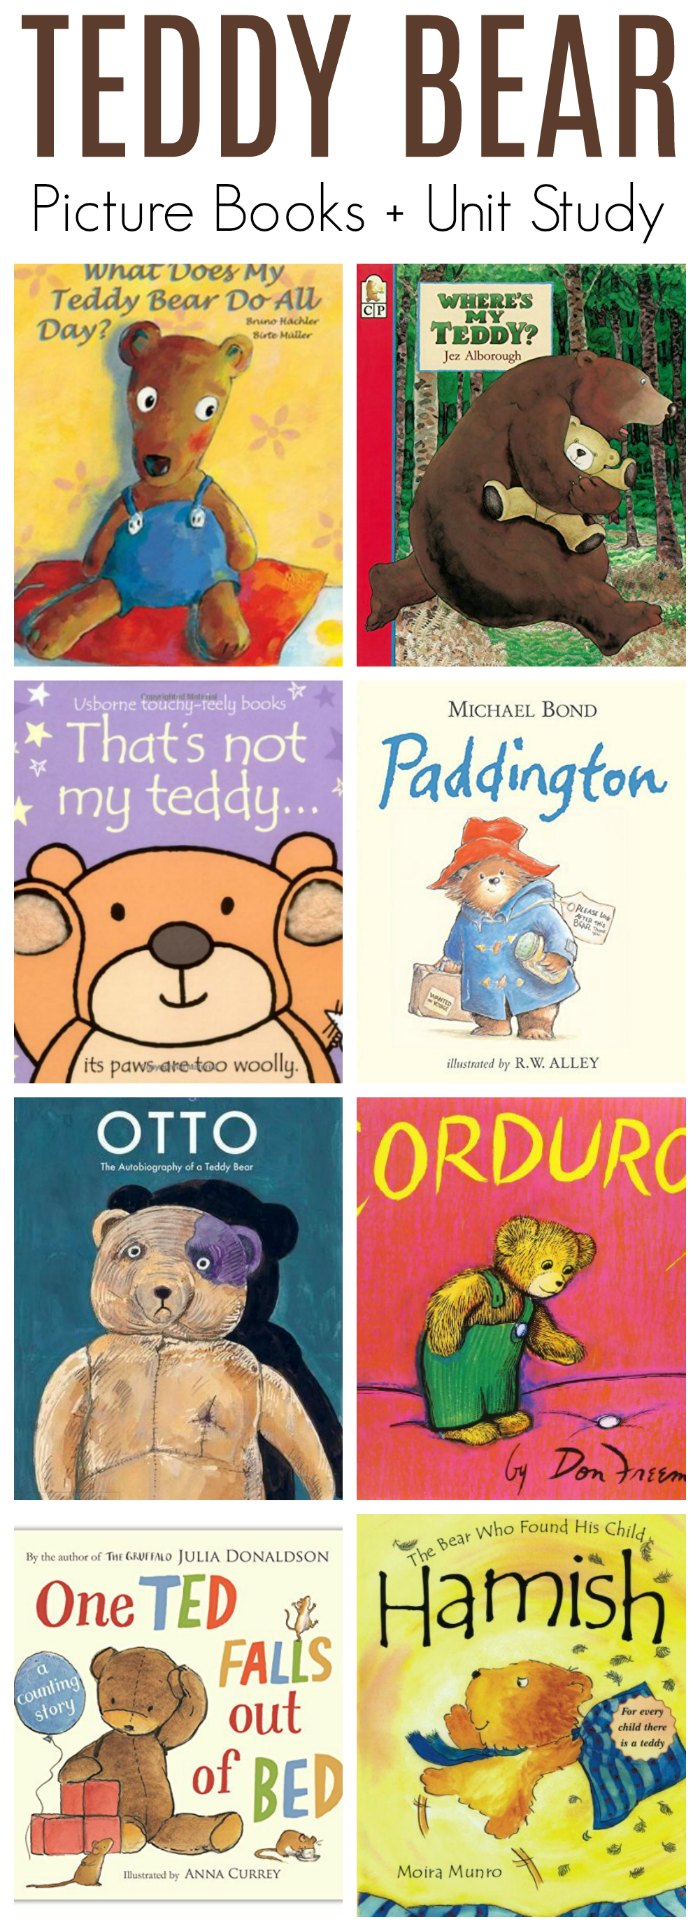 Teddy Bear Books - Picture Books Reading List (Teddy Bear Unit Study)